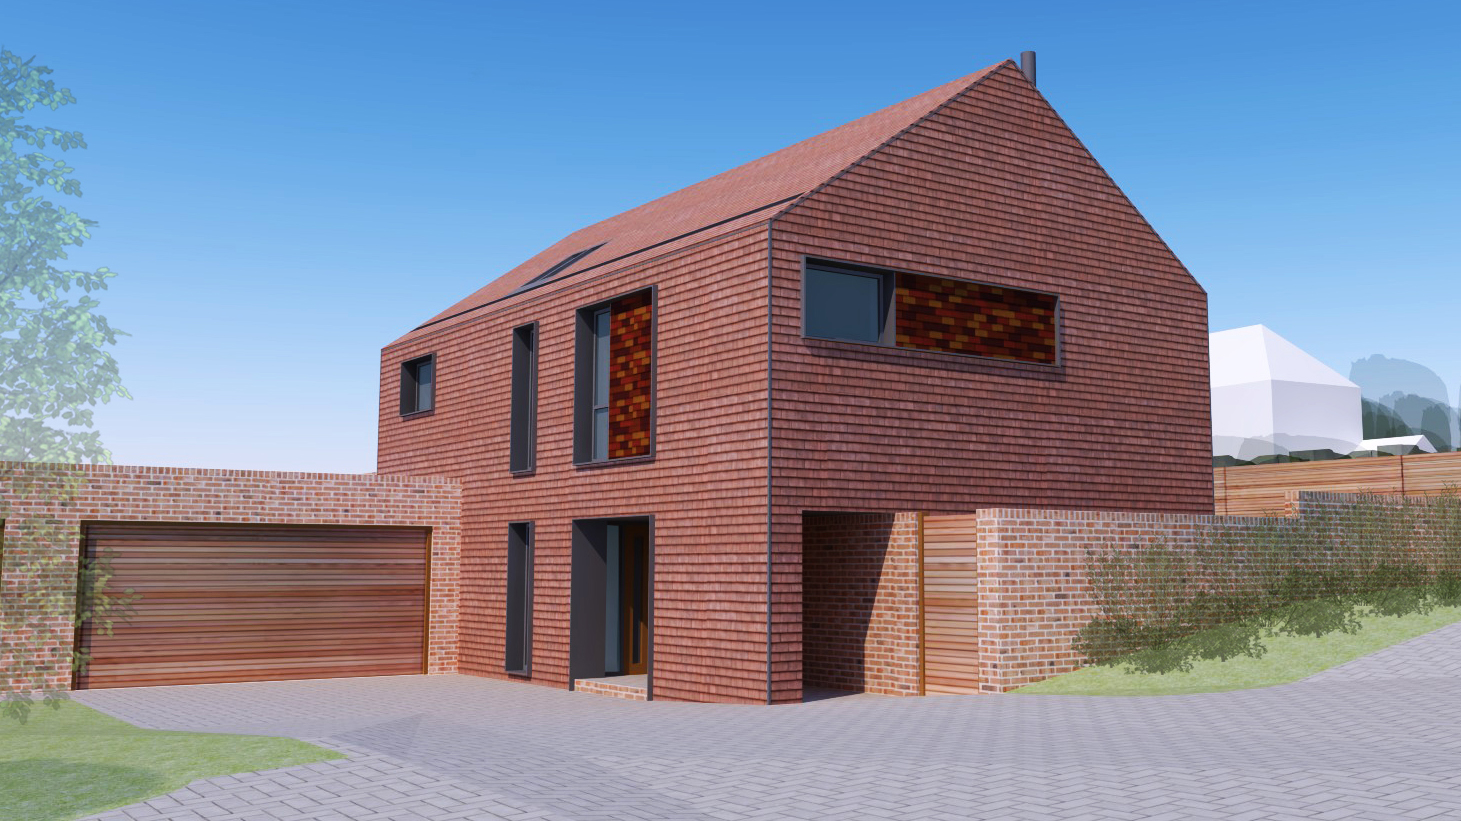 Applications. Residential. Westbourne, Ringmer, Lewes (3)